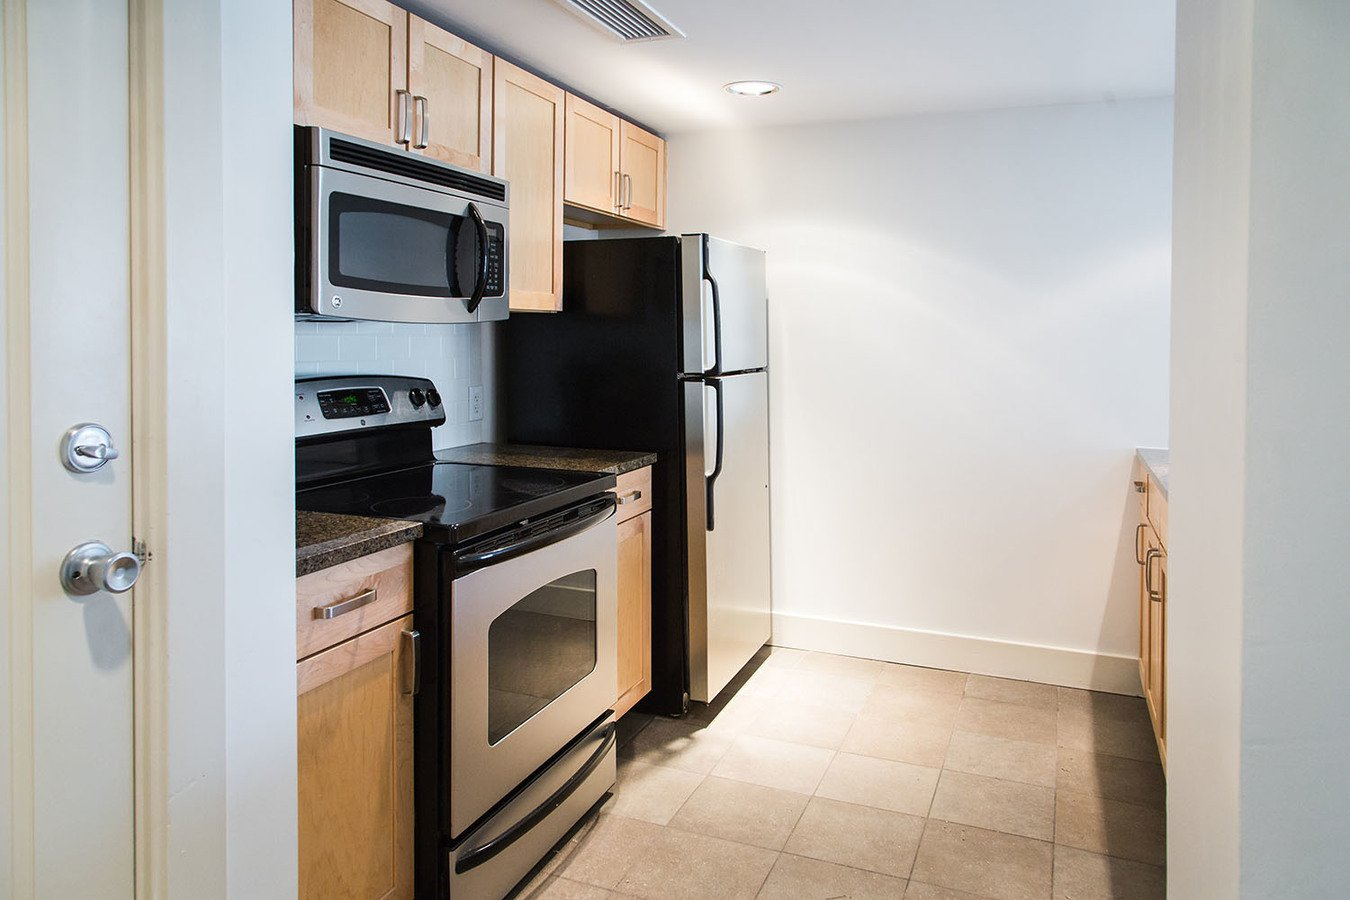 1 Bedroom 1 Bathroom Apartment for rent at Clyde Manor in Kansas City, MO